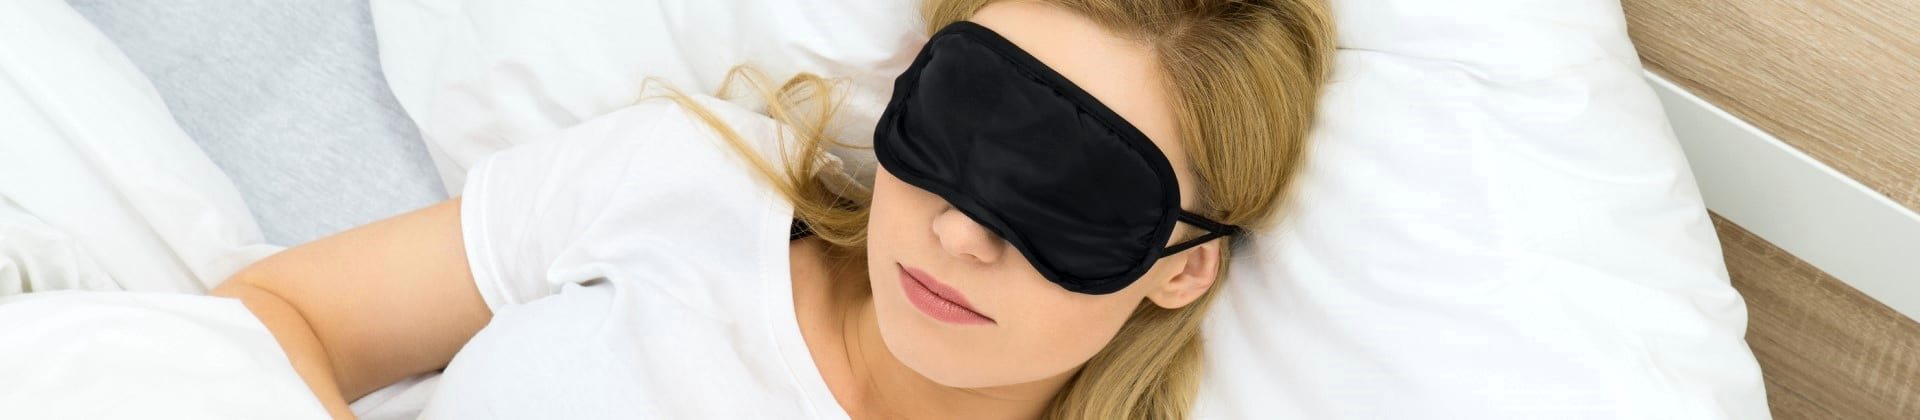 Best Sleep Masks Reviewed in Detail